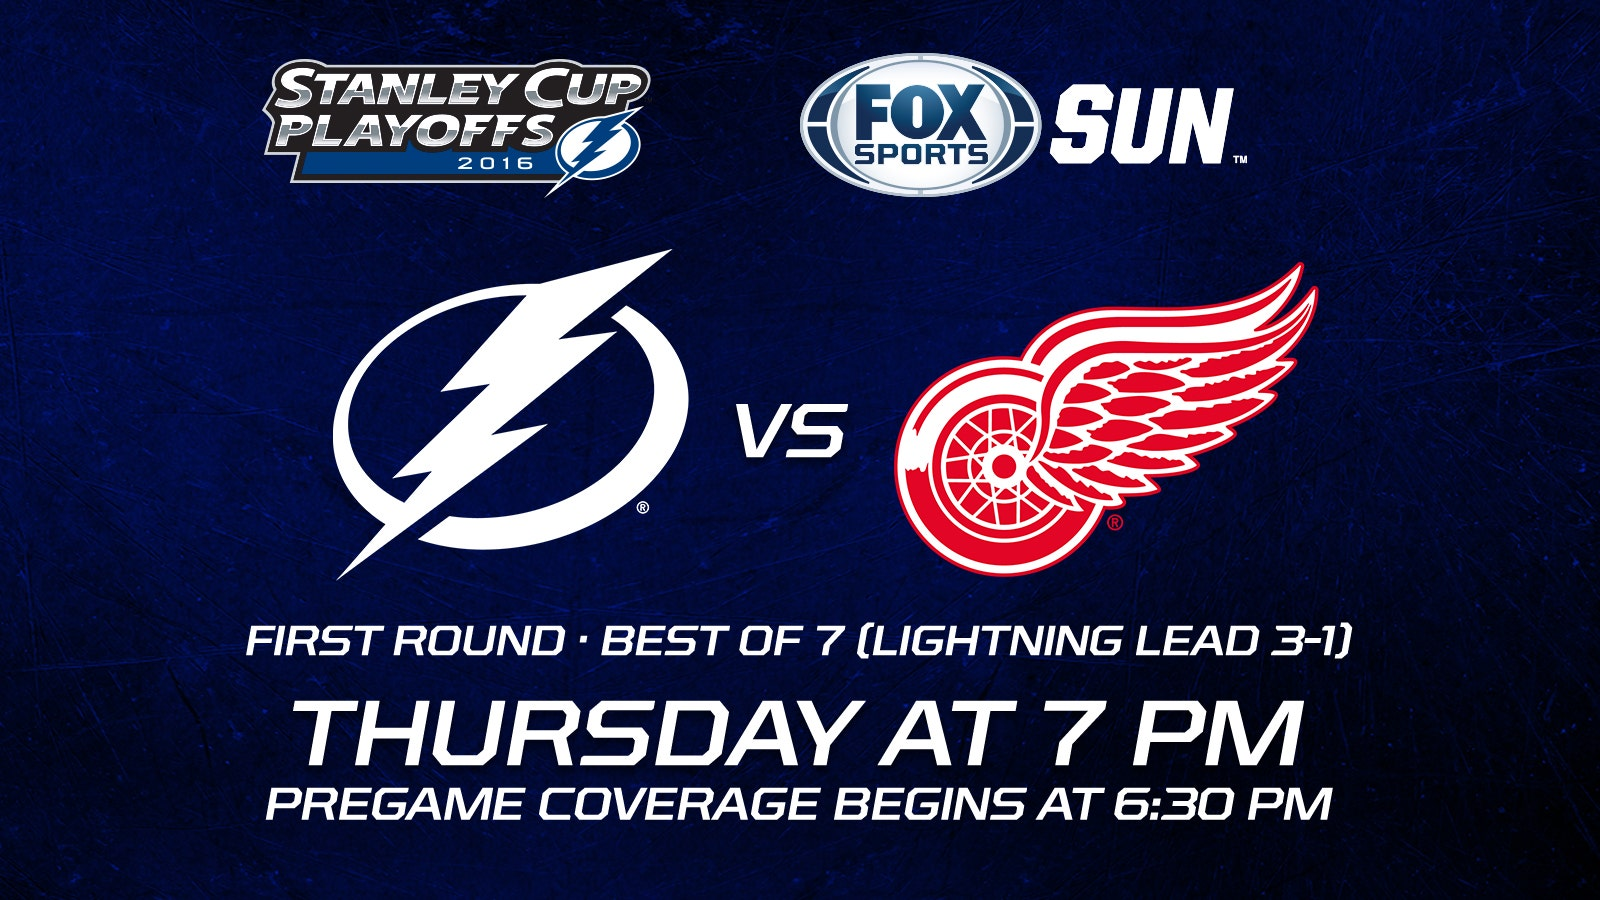 Detroit Red Wings at Tampa Bay Lightning Game 5 preview